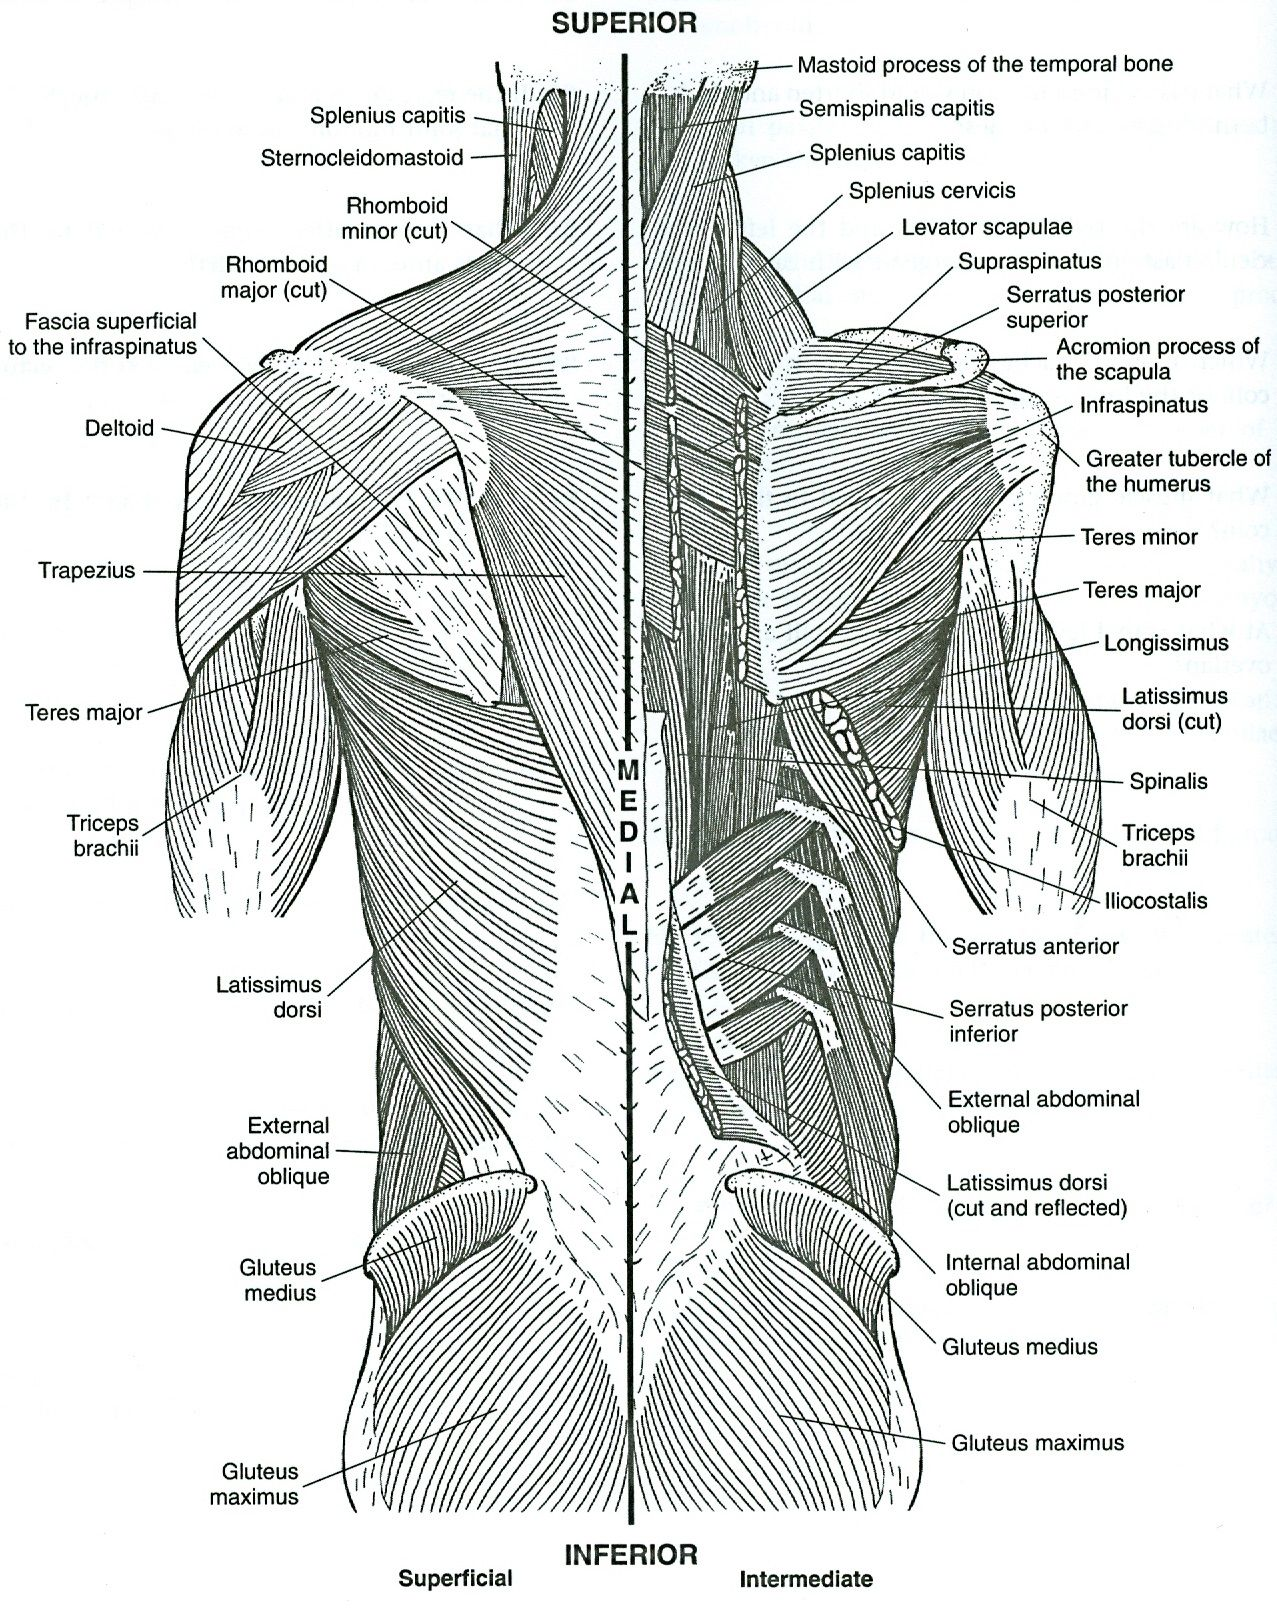 - Musculoskeletal Anatomy Coloring Book. 2nd Ed. Http://kmelot